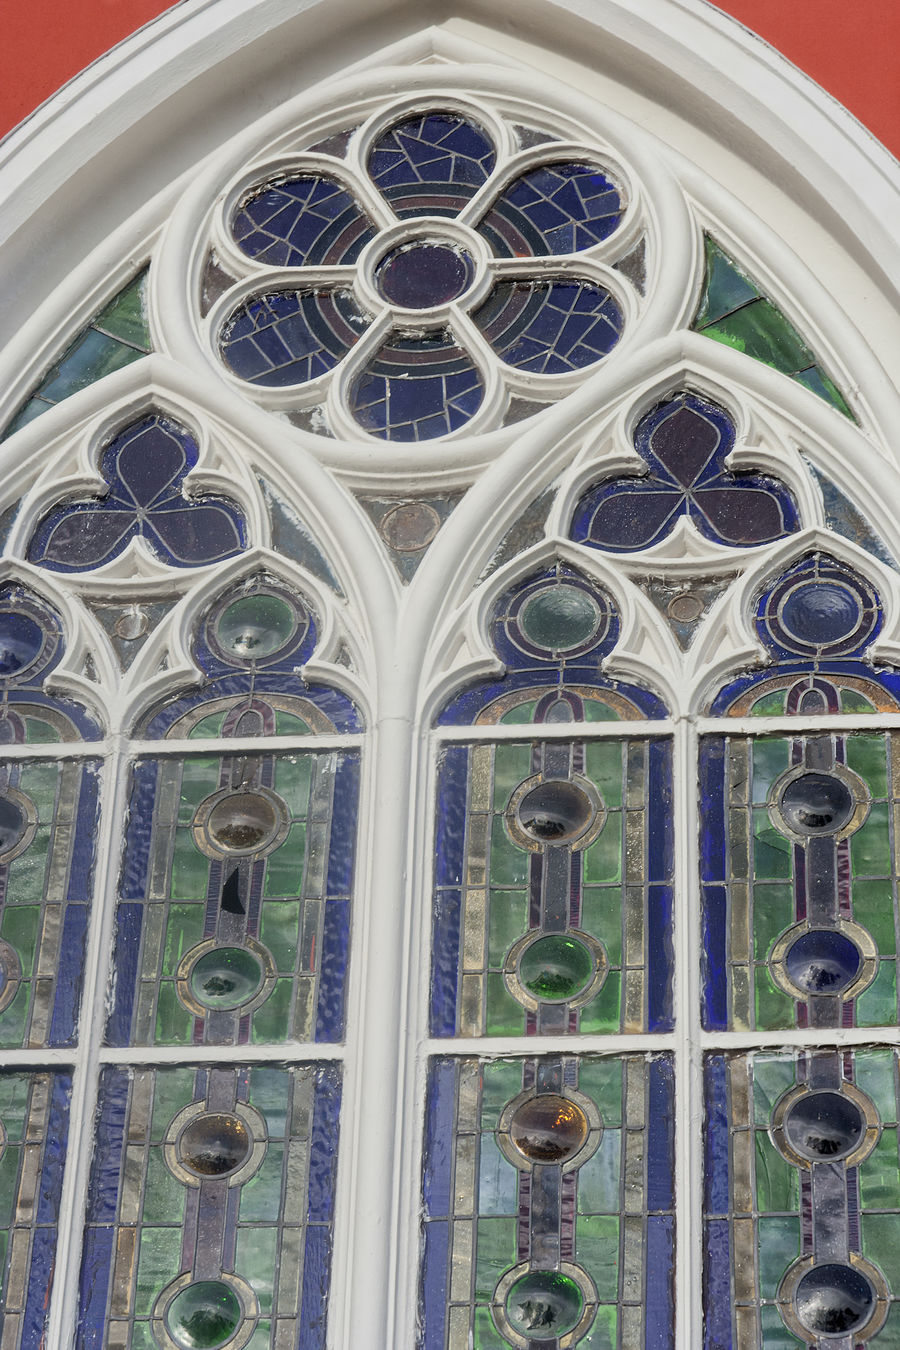 Window of Cathedral de la Mercedes - Grecia, Costa Rica Arch Architecture Architecture And Art Building Building Exterior Cathedral Cathedral De La Mercedes Christianity Church Church Window Close-up Costa Rica Grecia Low Angle View No People Pattern Place Of Worship Religion Rose Window Single Object Spirituality Stained Glass Stained Glass Window Travel Destinations Window